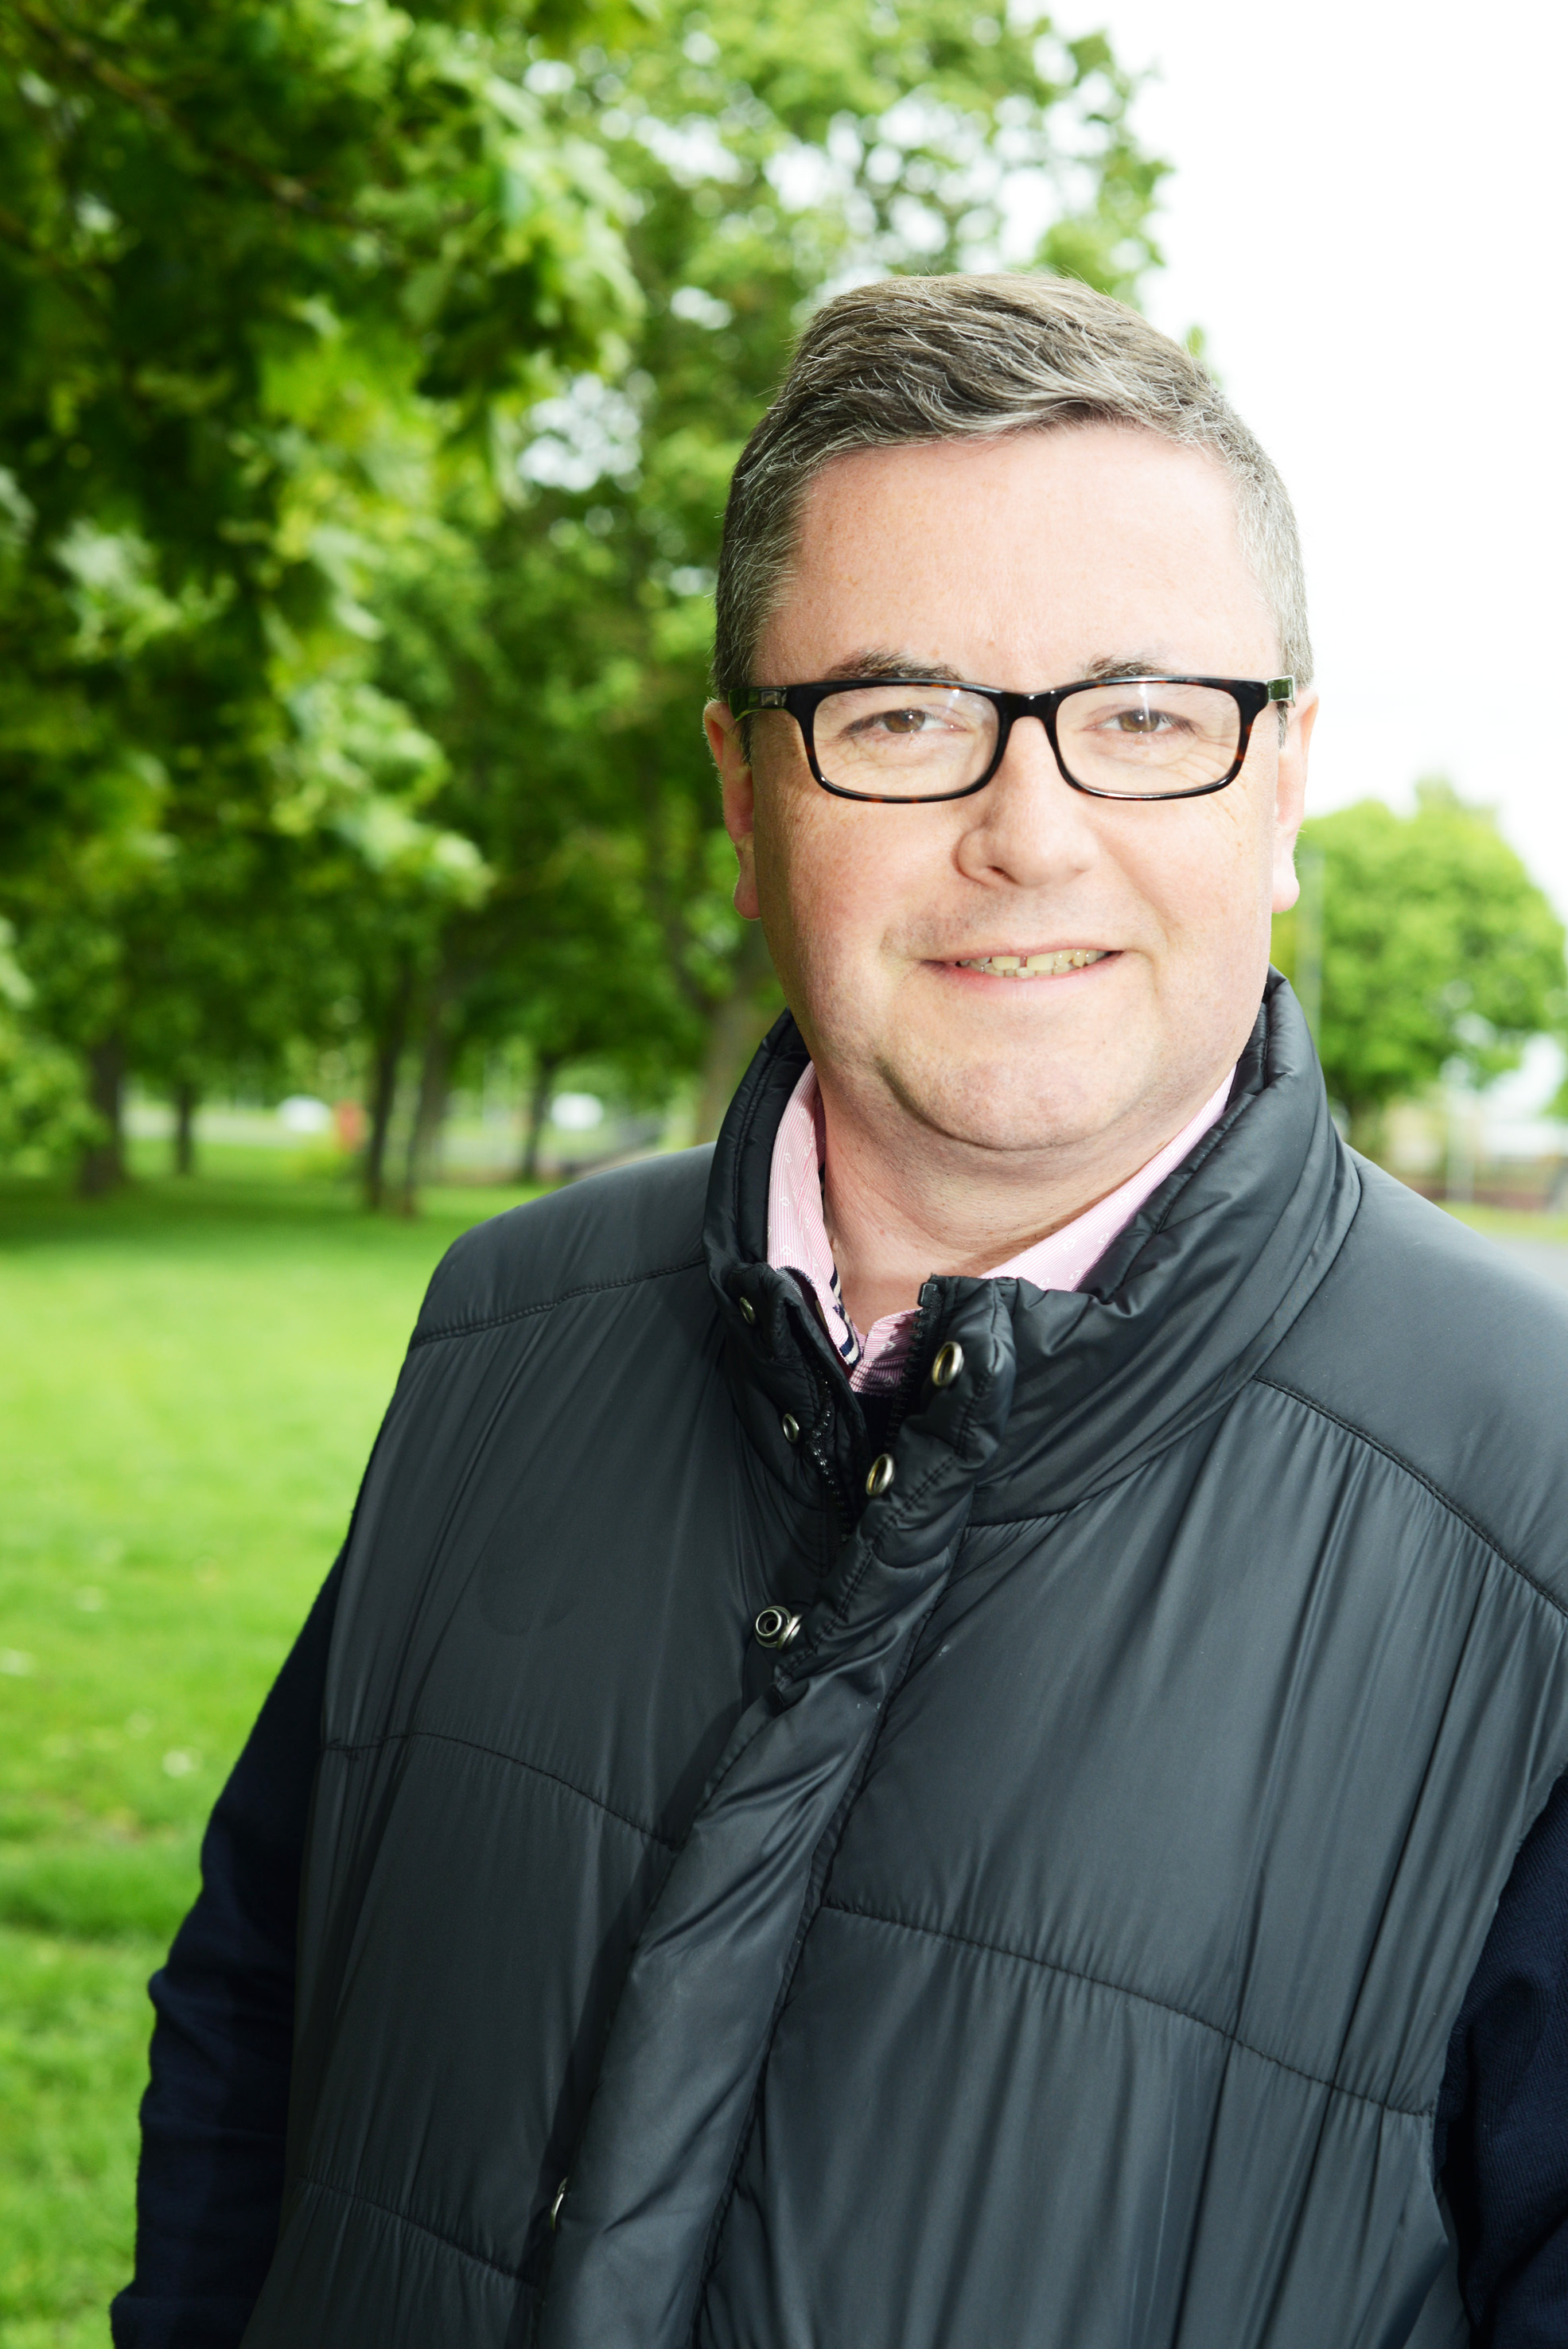 Feature on MP Robert Buckland. Pictured Robert Buckland. 15/05/17 Thomas kelsey